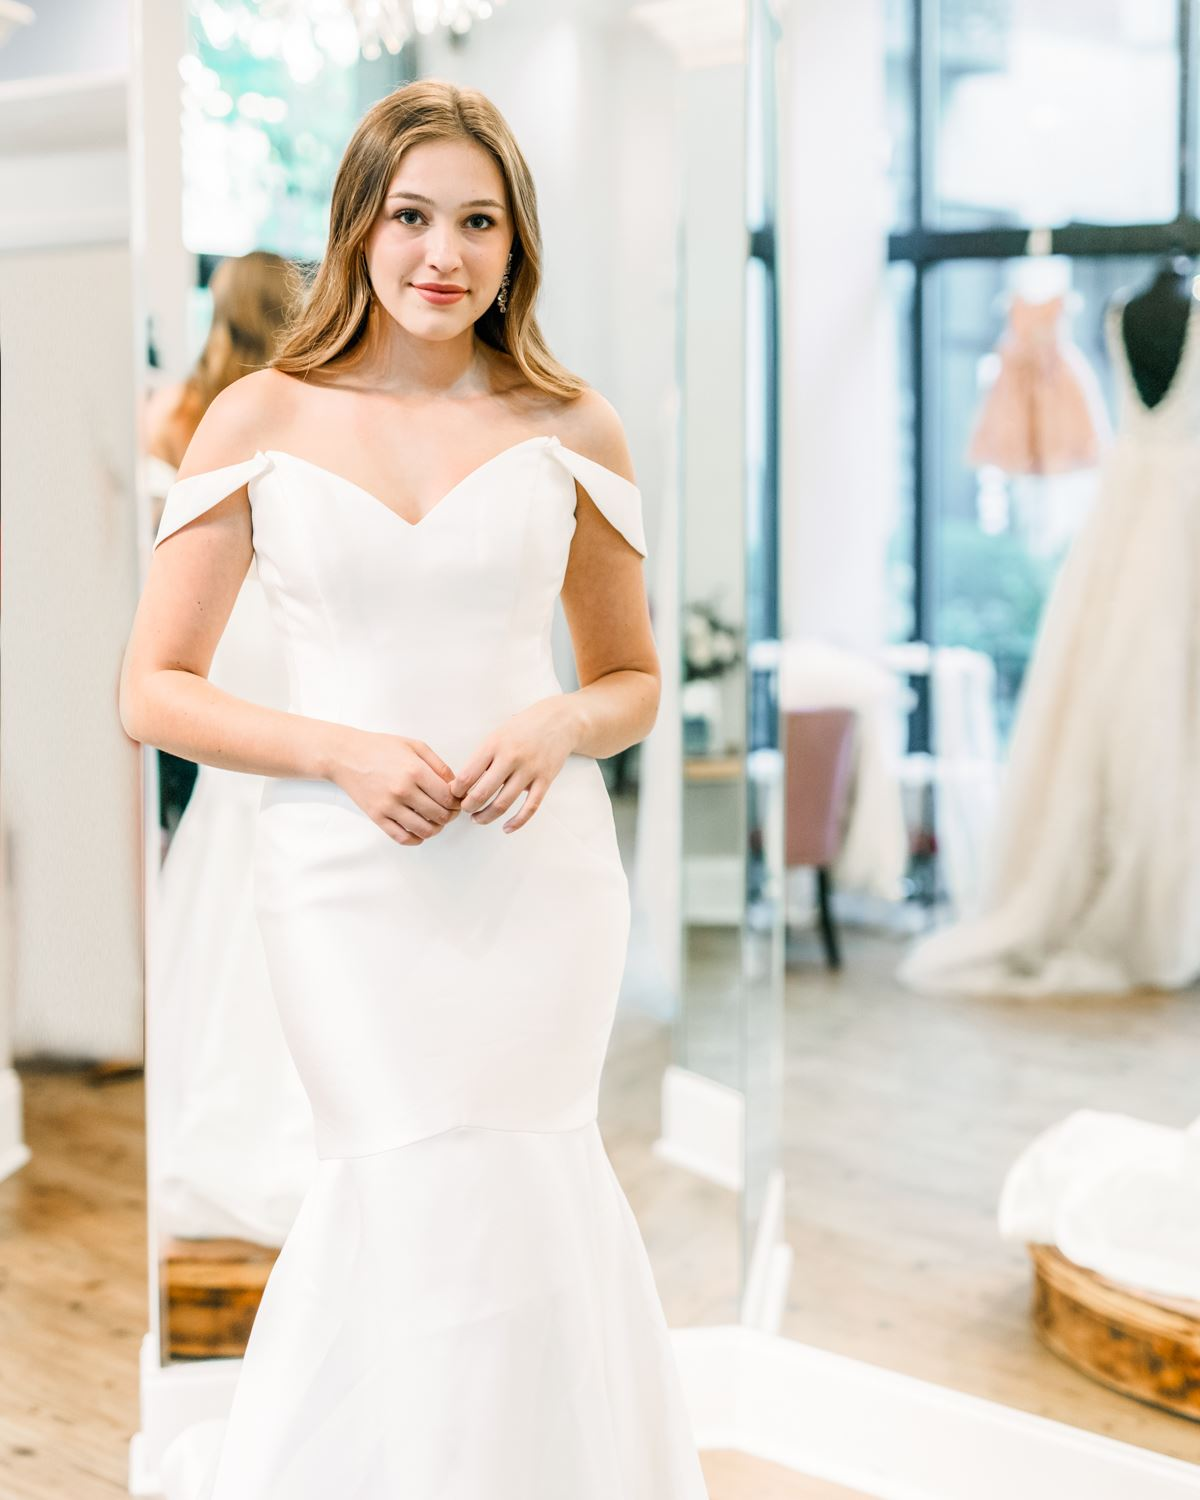 Our Favorite 2021 Wedding Dress Trends. Desktop Image